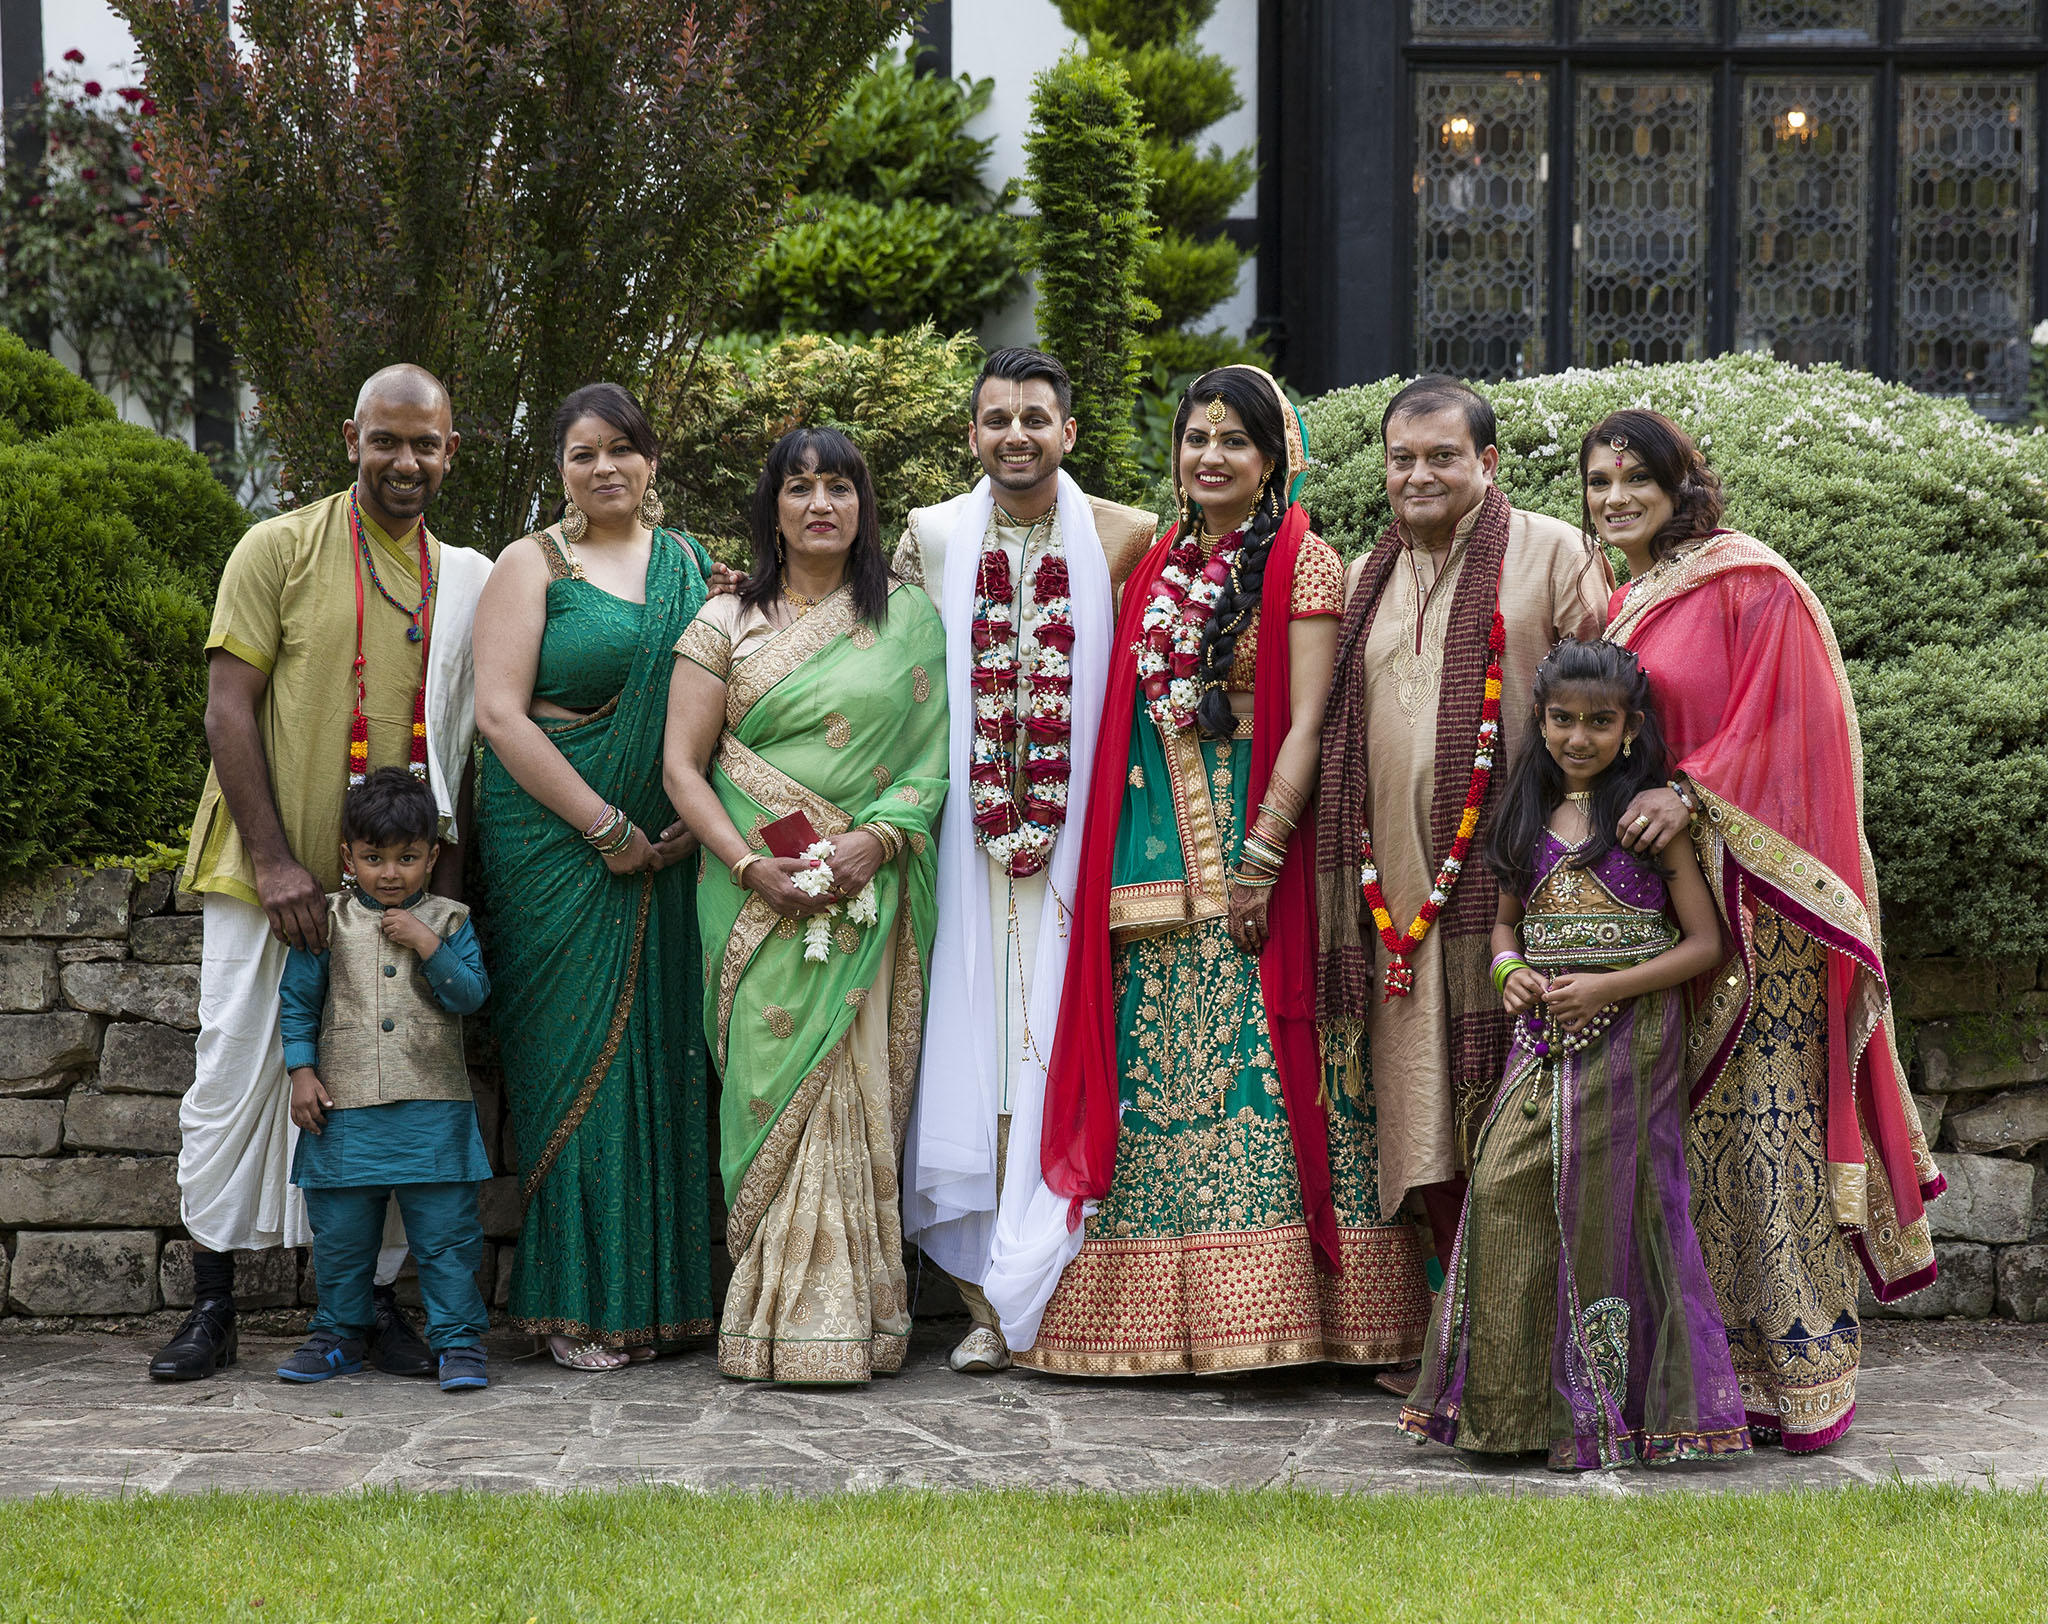 elizabethgphotography_kingslangley_hertfordshire_fineart_indian_wedding_photography_jigna_bhuja_bhaktivedanta_manor_watford_42.jpg